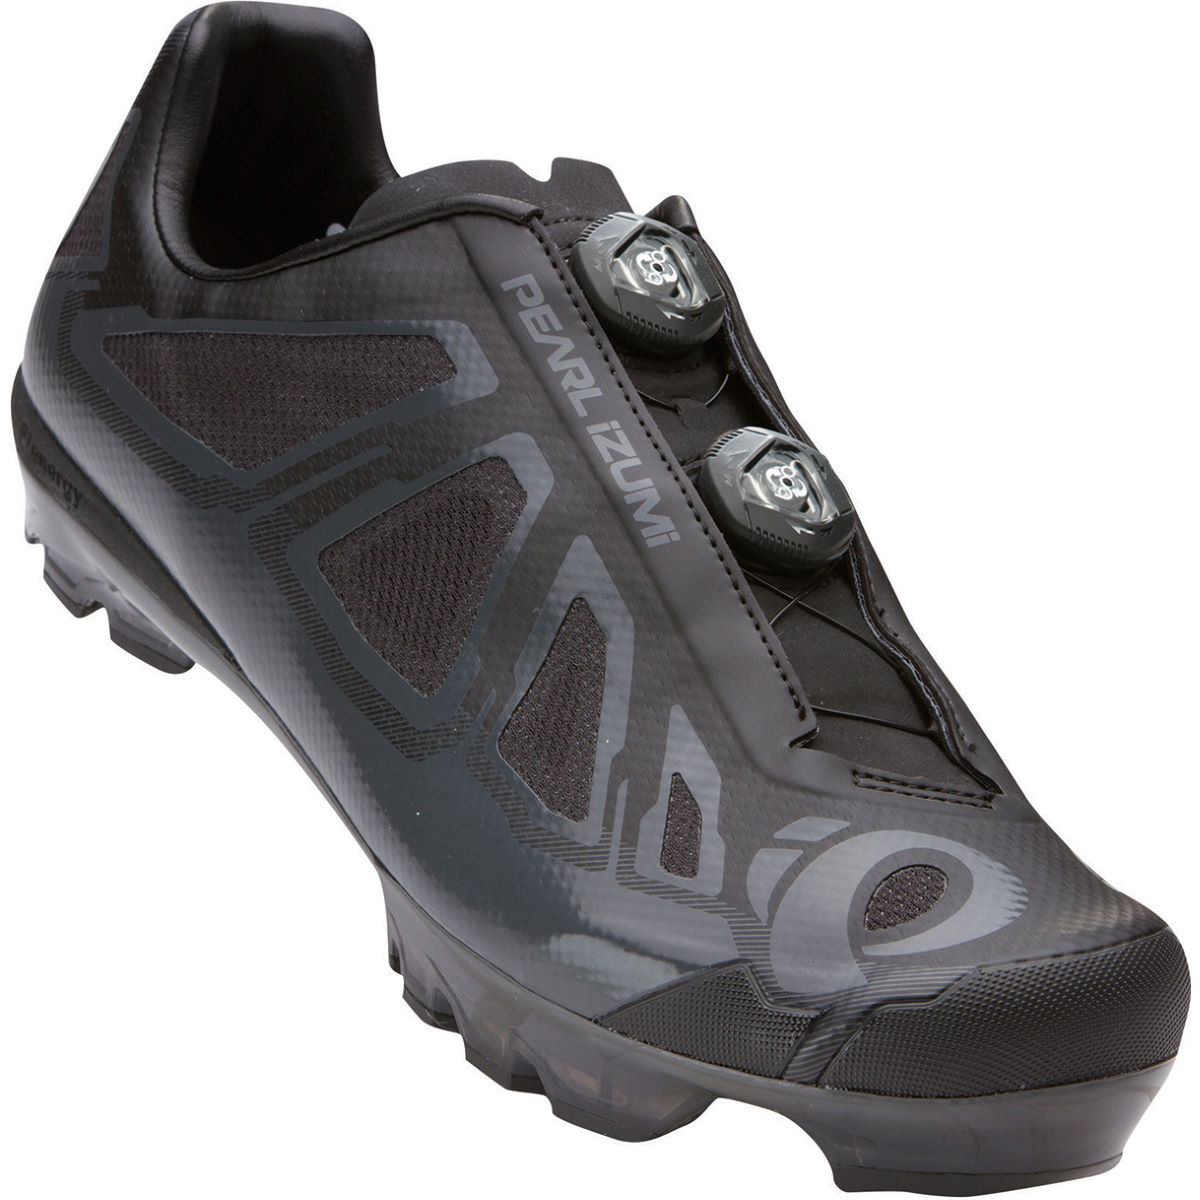 Chaussures VTT Pearl Izumi X-Project 1.0 - 46 Shadow Grey/Black